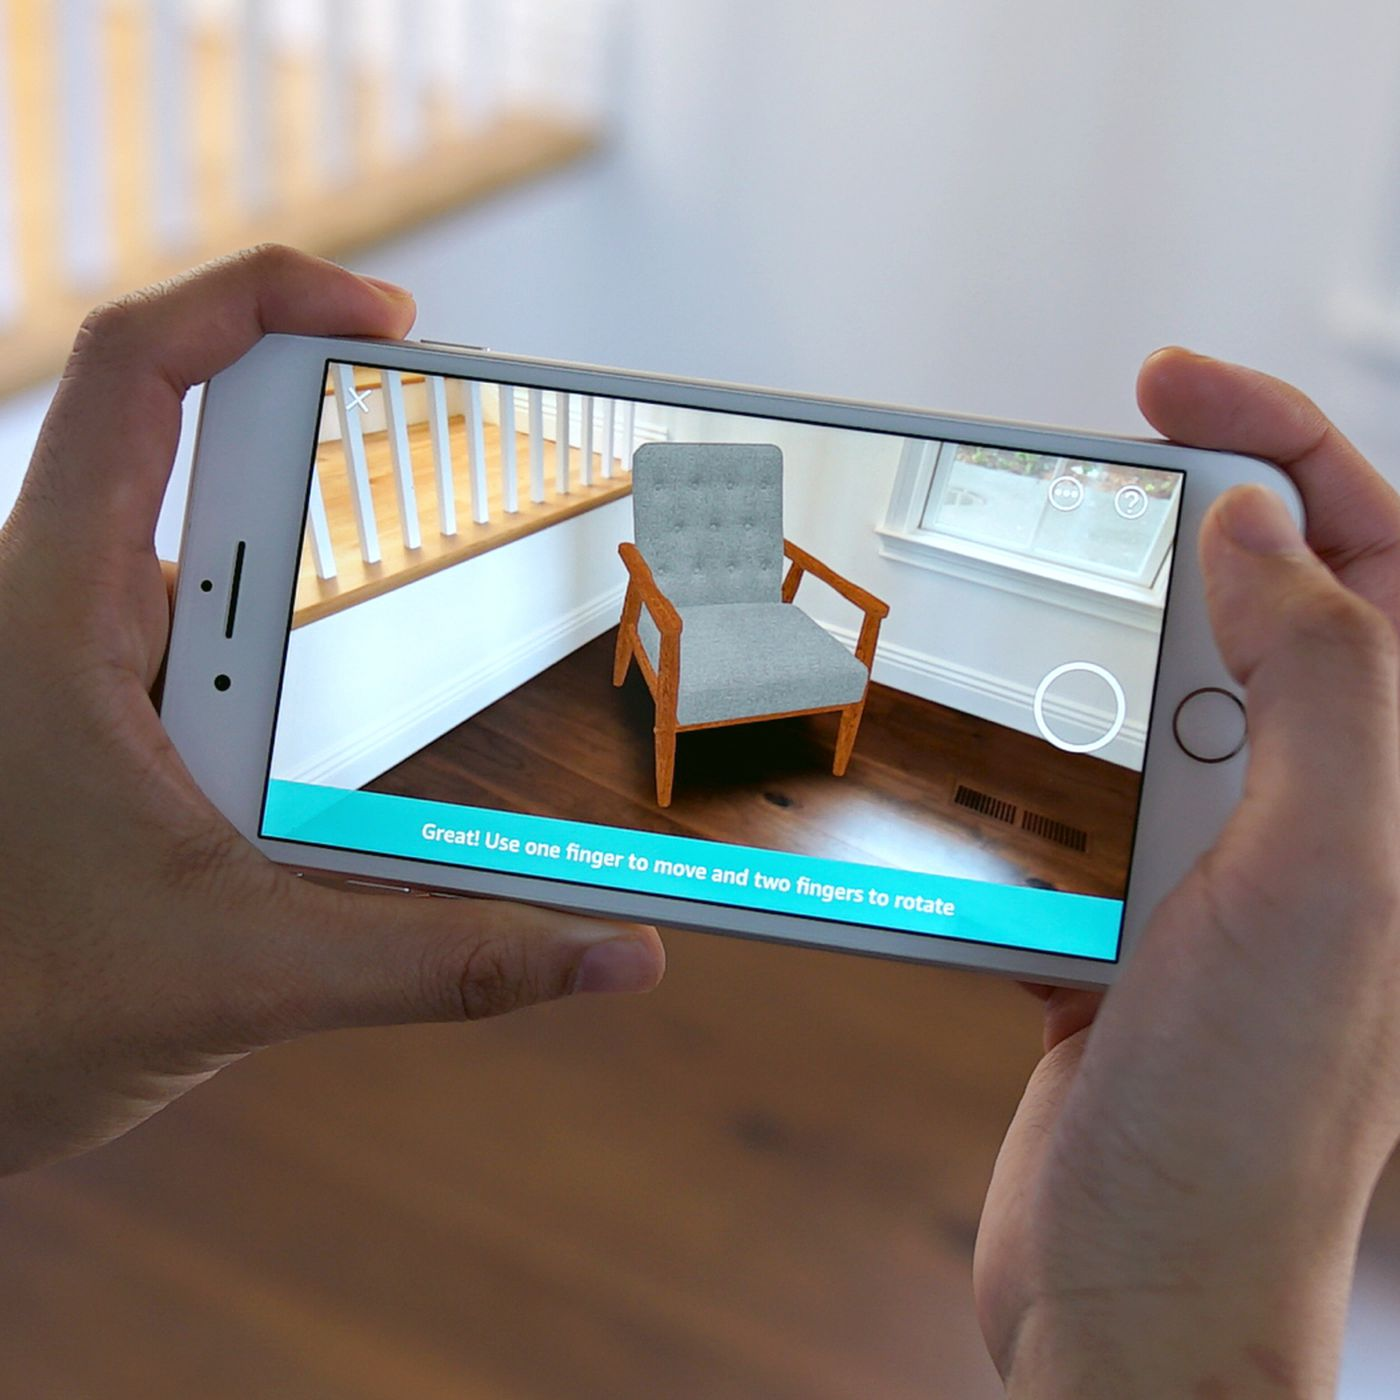 Amazons App Now Lets You Place Items Inside Your Home